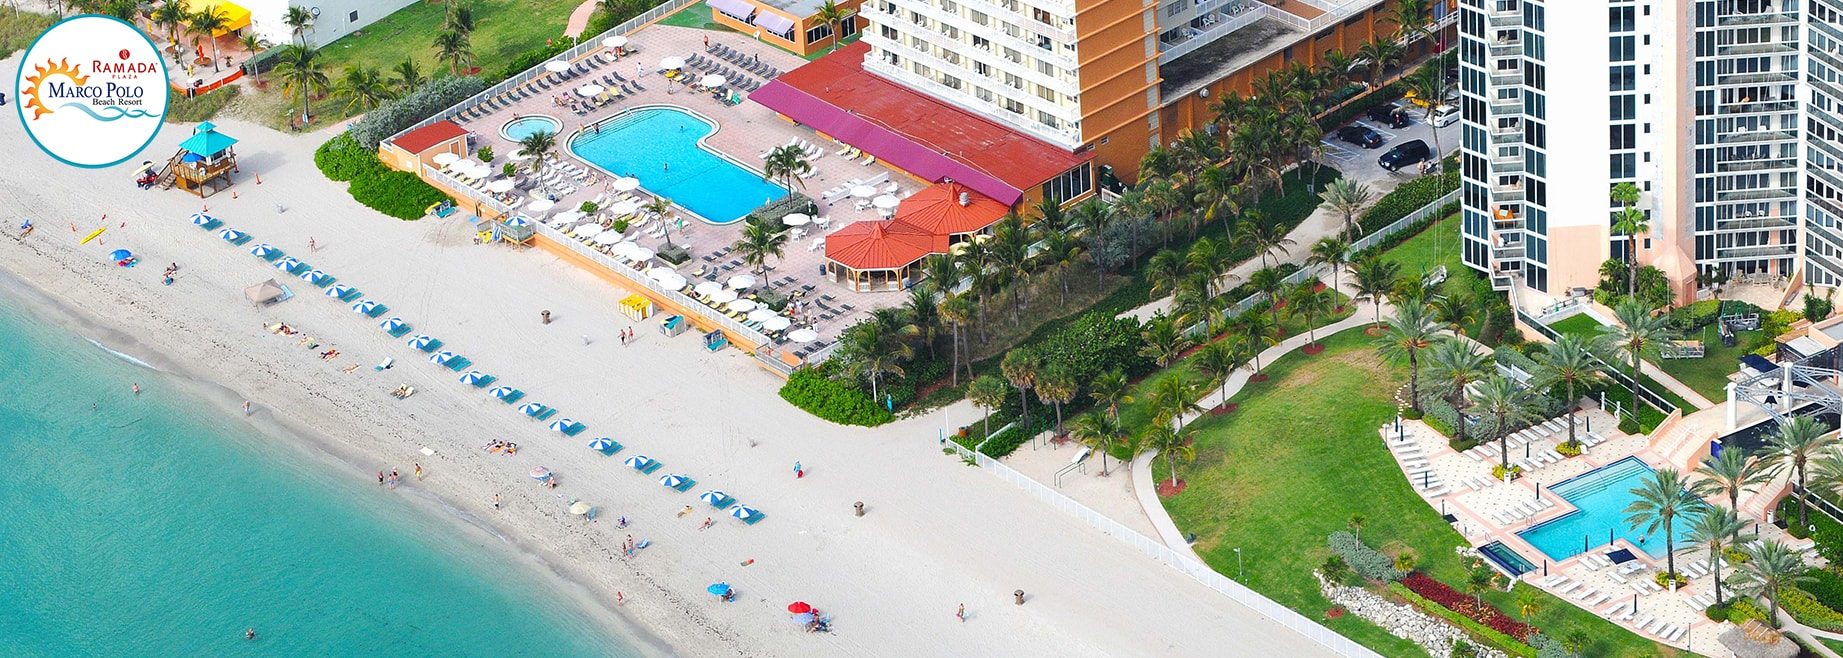 Aerial view of Marco Polo Beach Resort